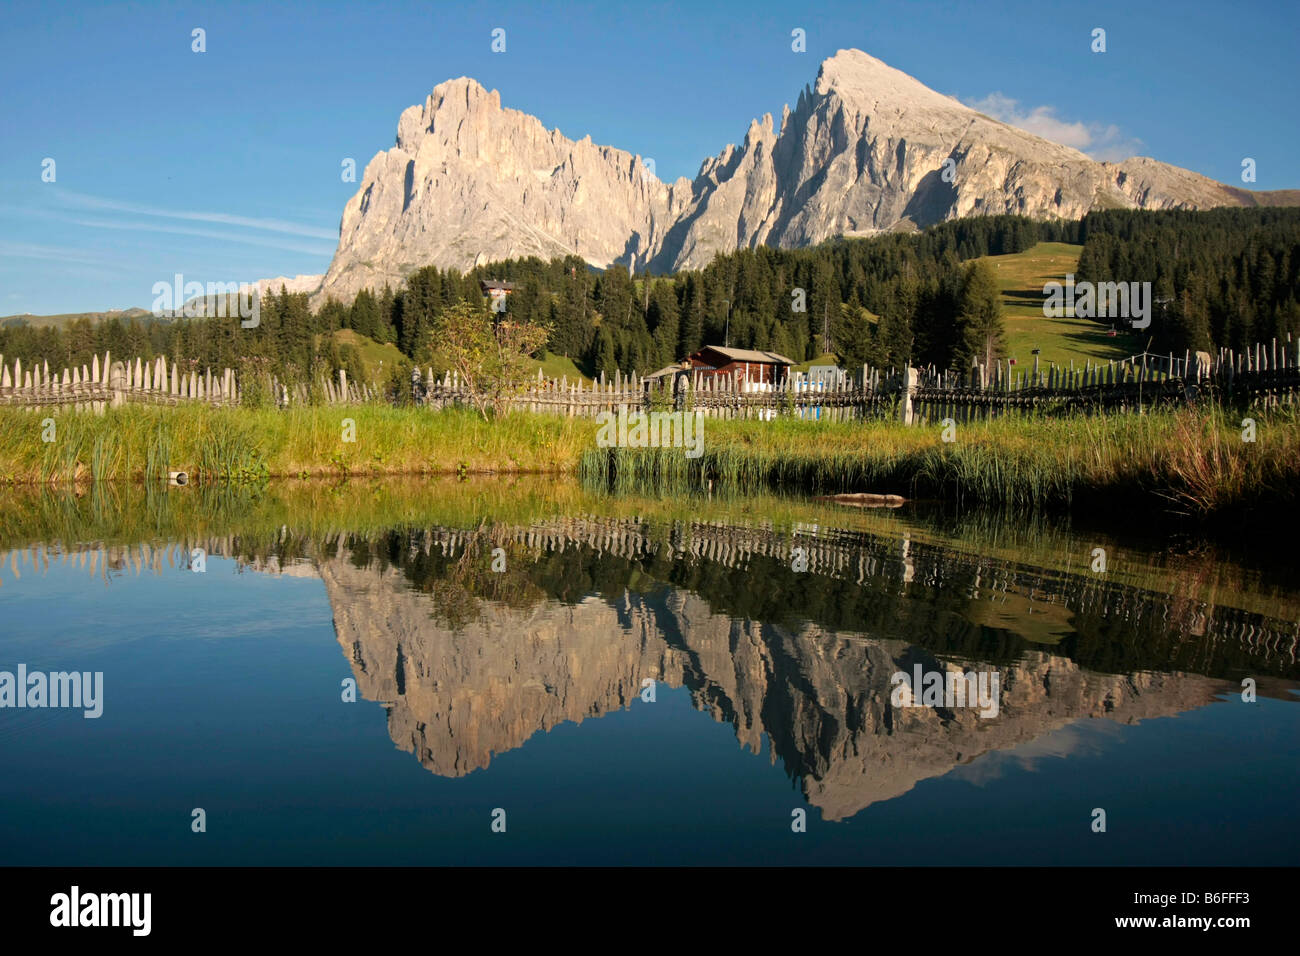 Long and Plattkofel summits of the alpine pasture Seiser Alm, Alpe di Siusi, in the Dolomites in summer, near Seis, - Stock Image